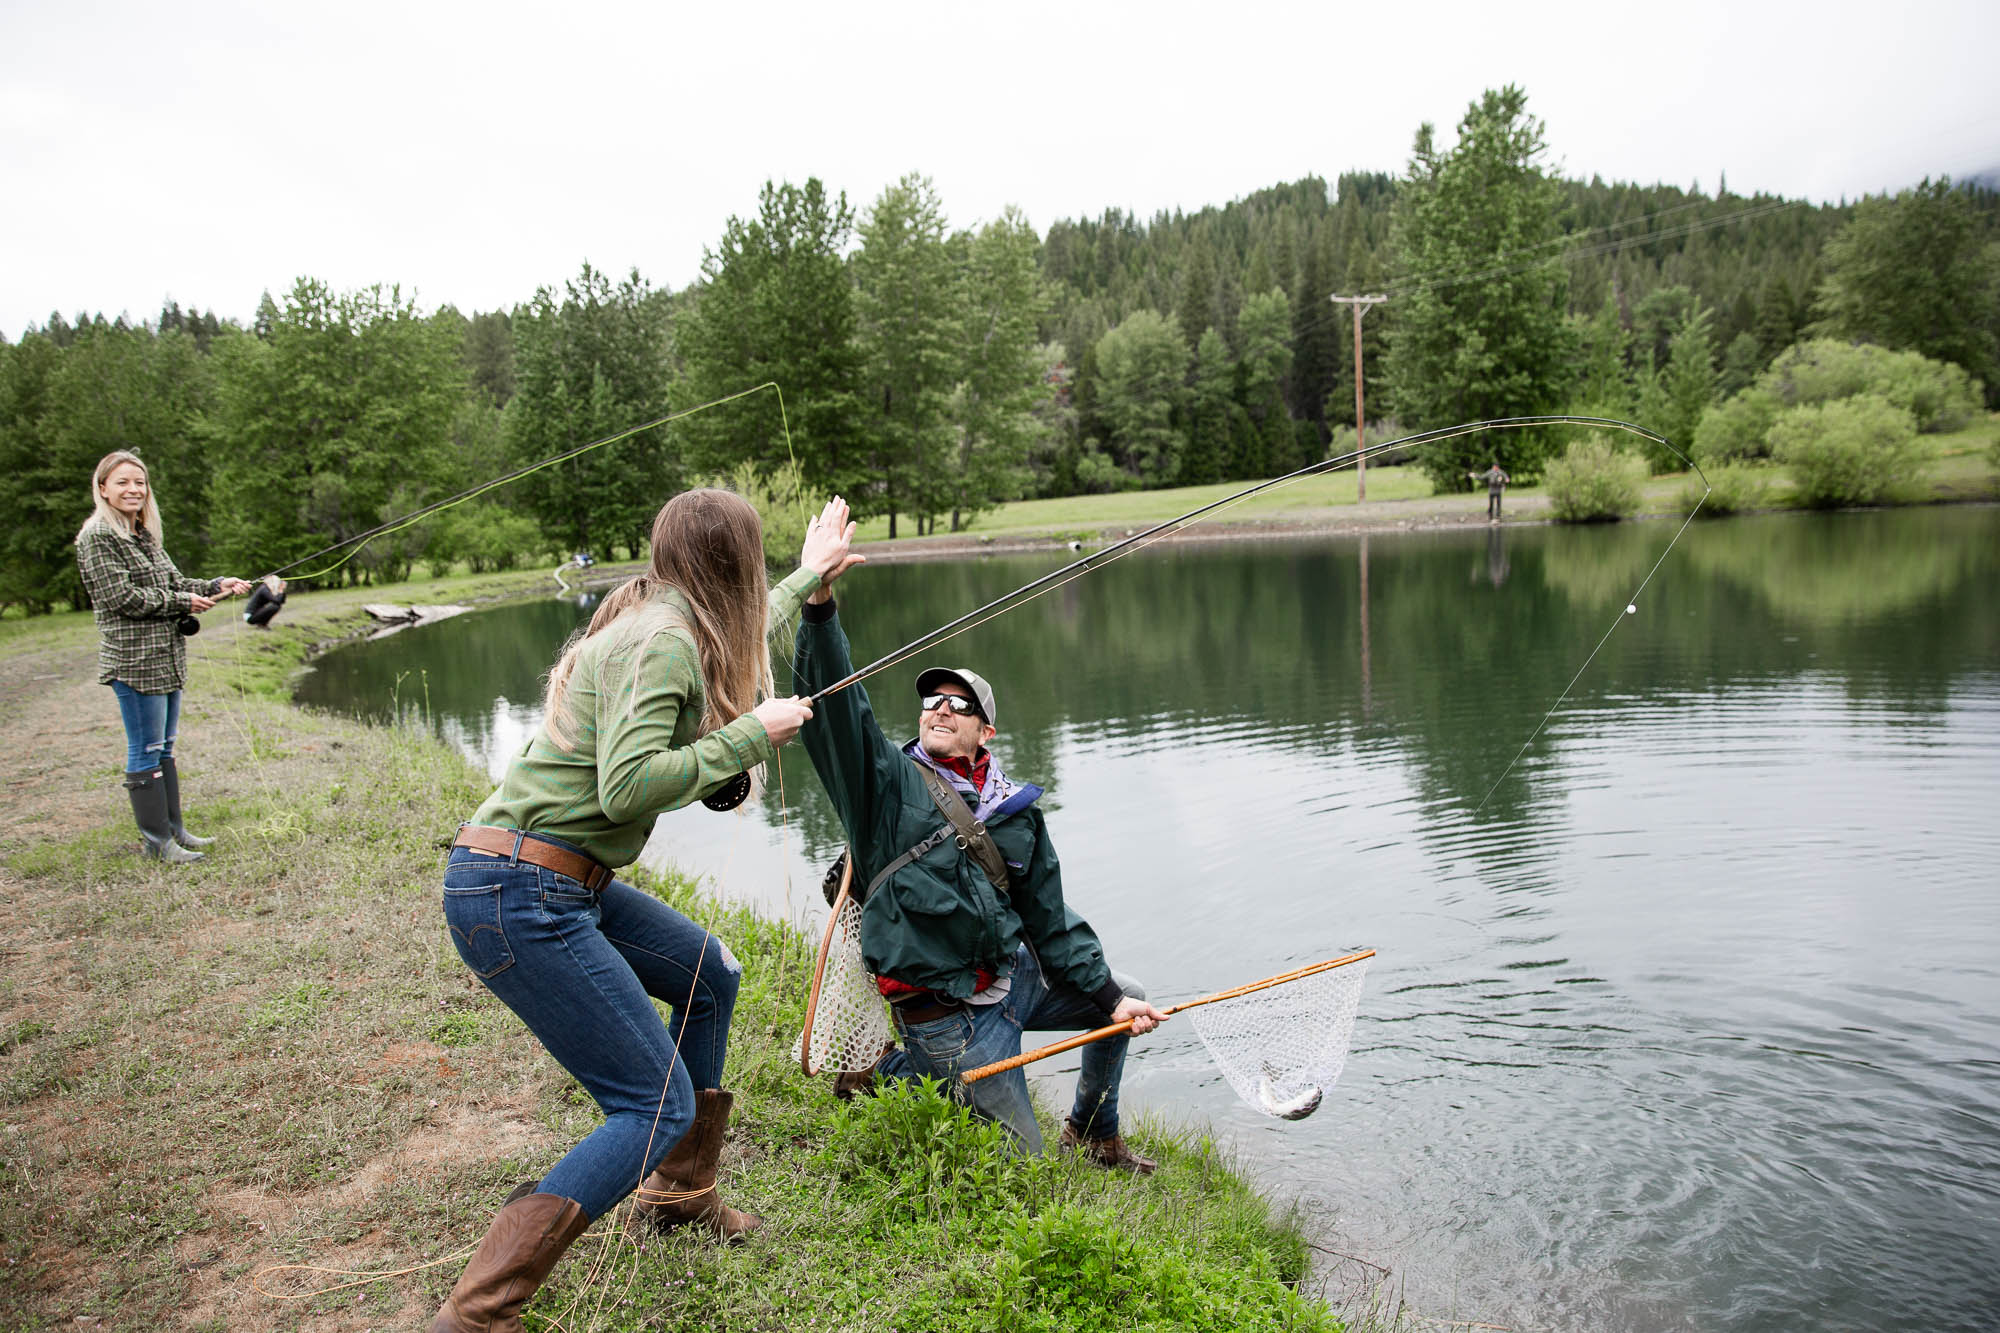 Fishing is another great activity that helps bring families together at Greenhorn Ranch